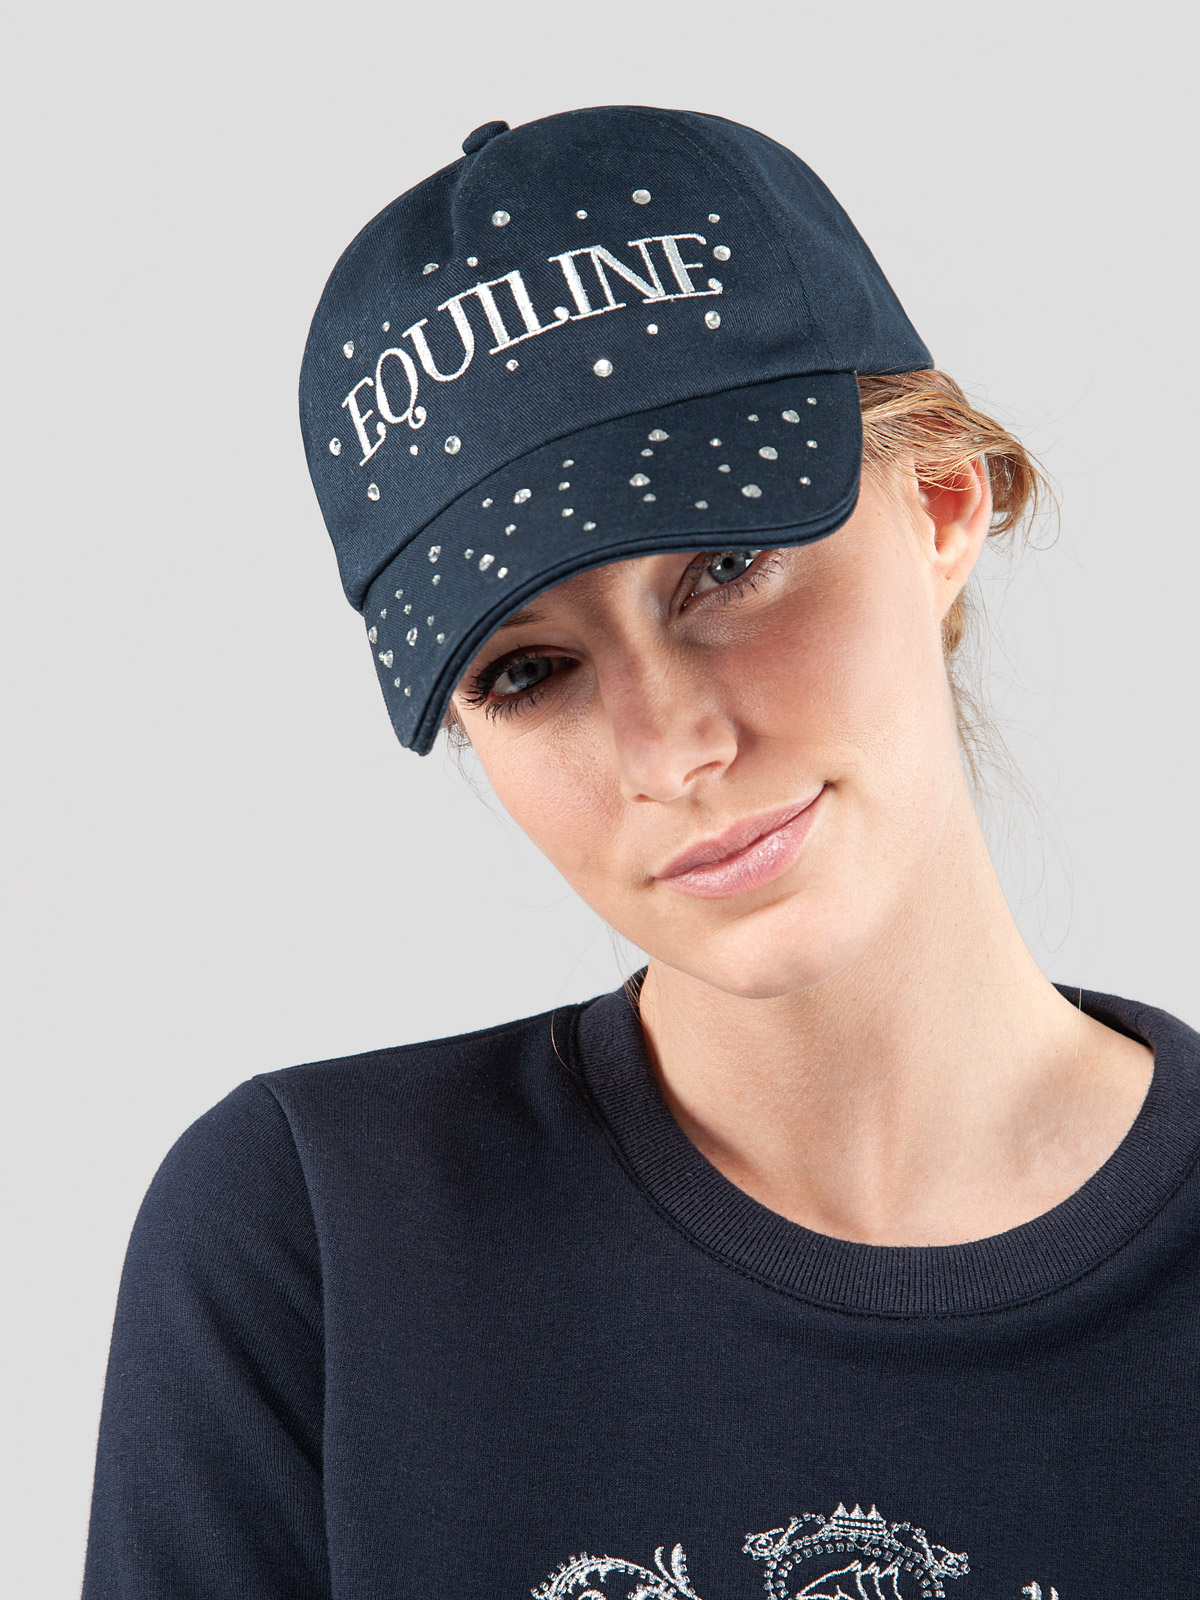 GALATEA WOMEN'S BASEBALL CAP WITH STRASS 1